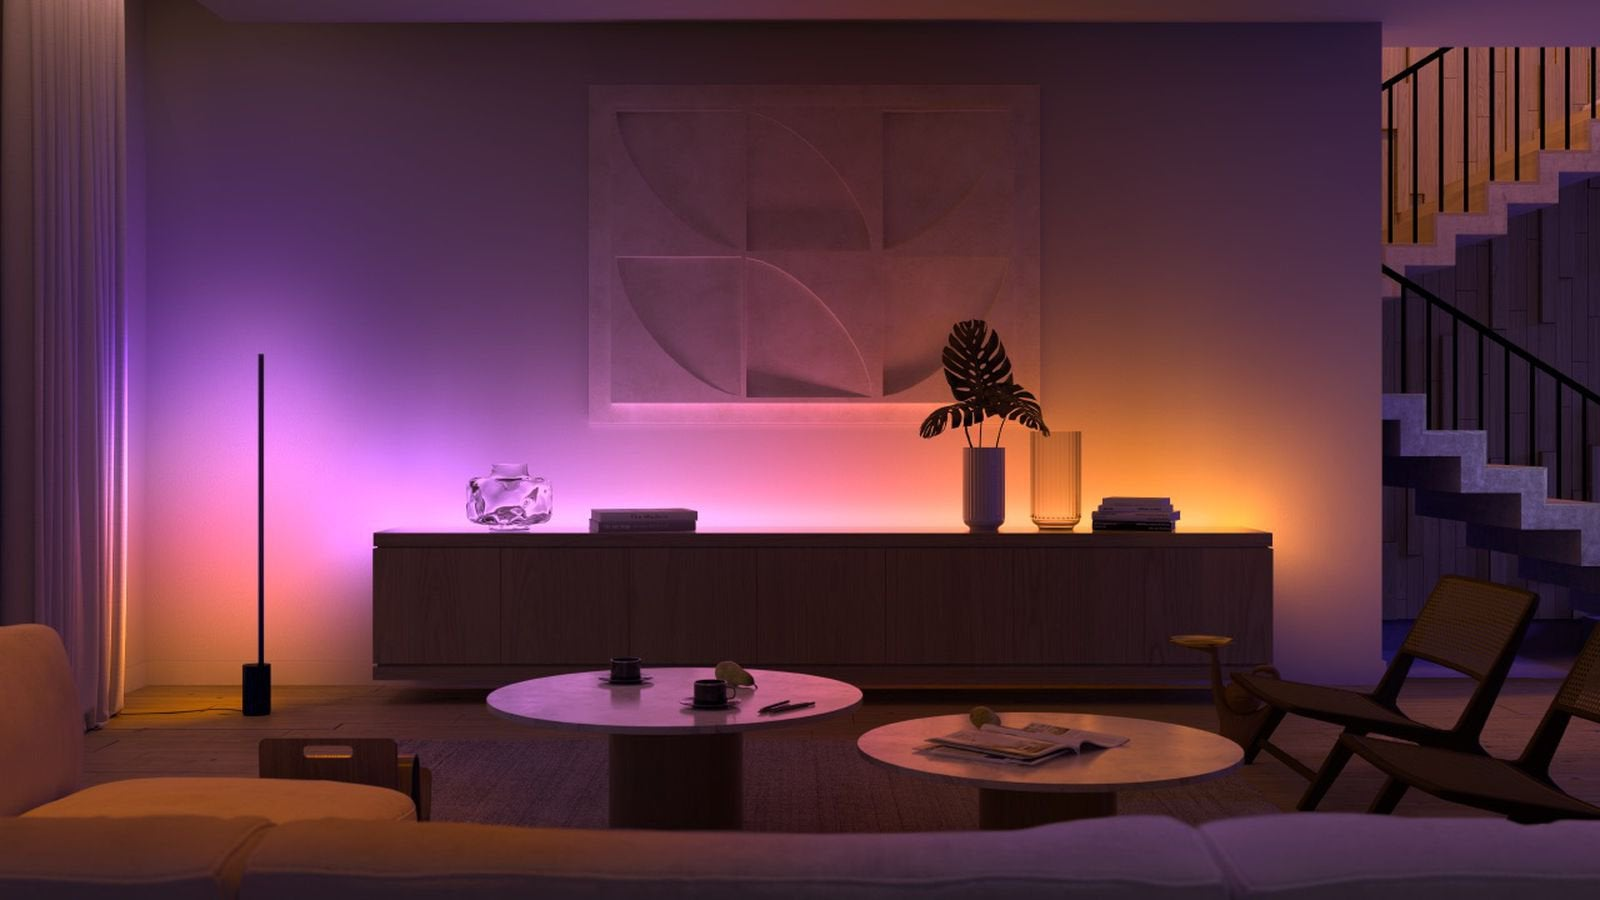 The Philips Hue line gains new gradient lights updated filament